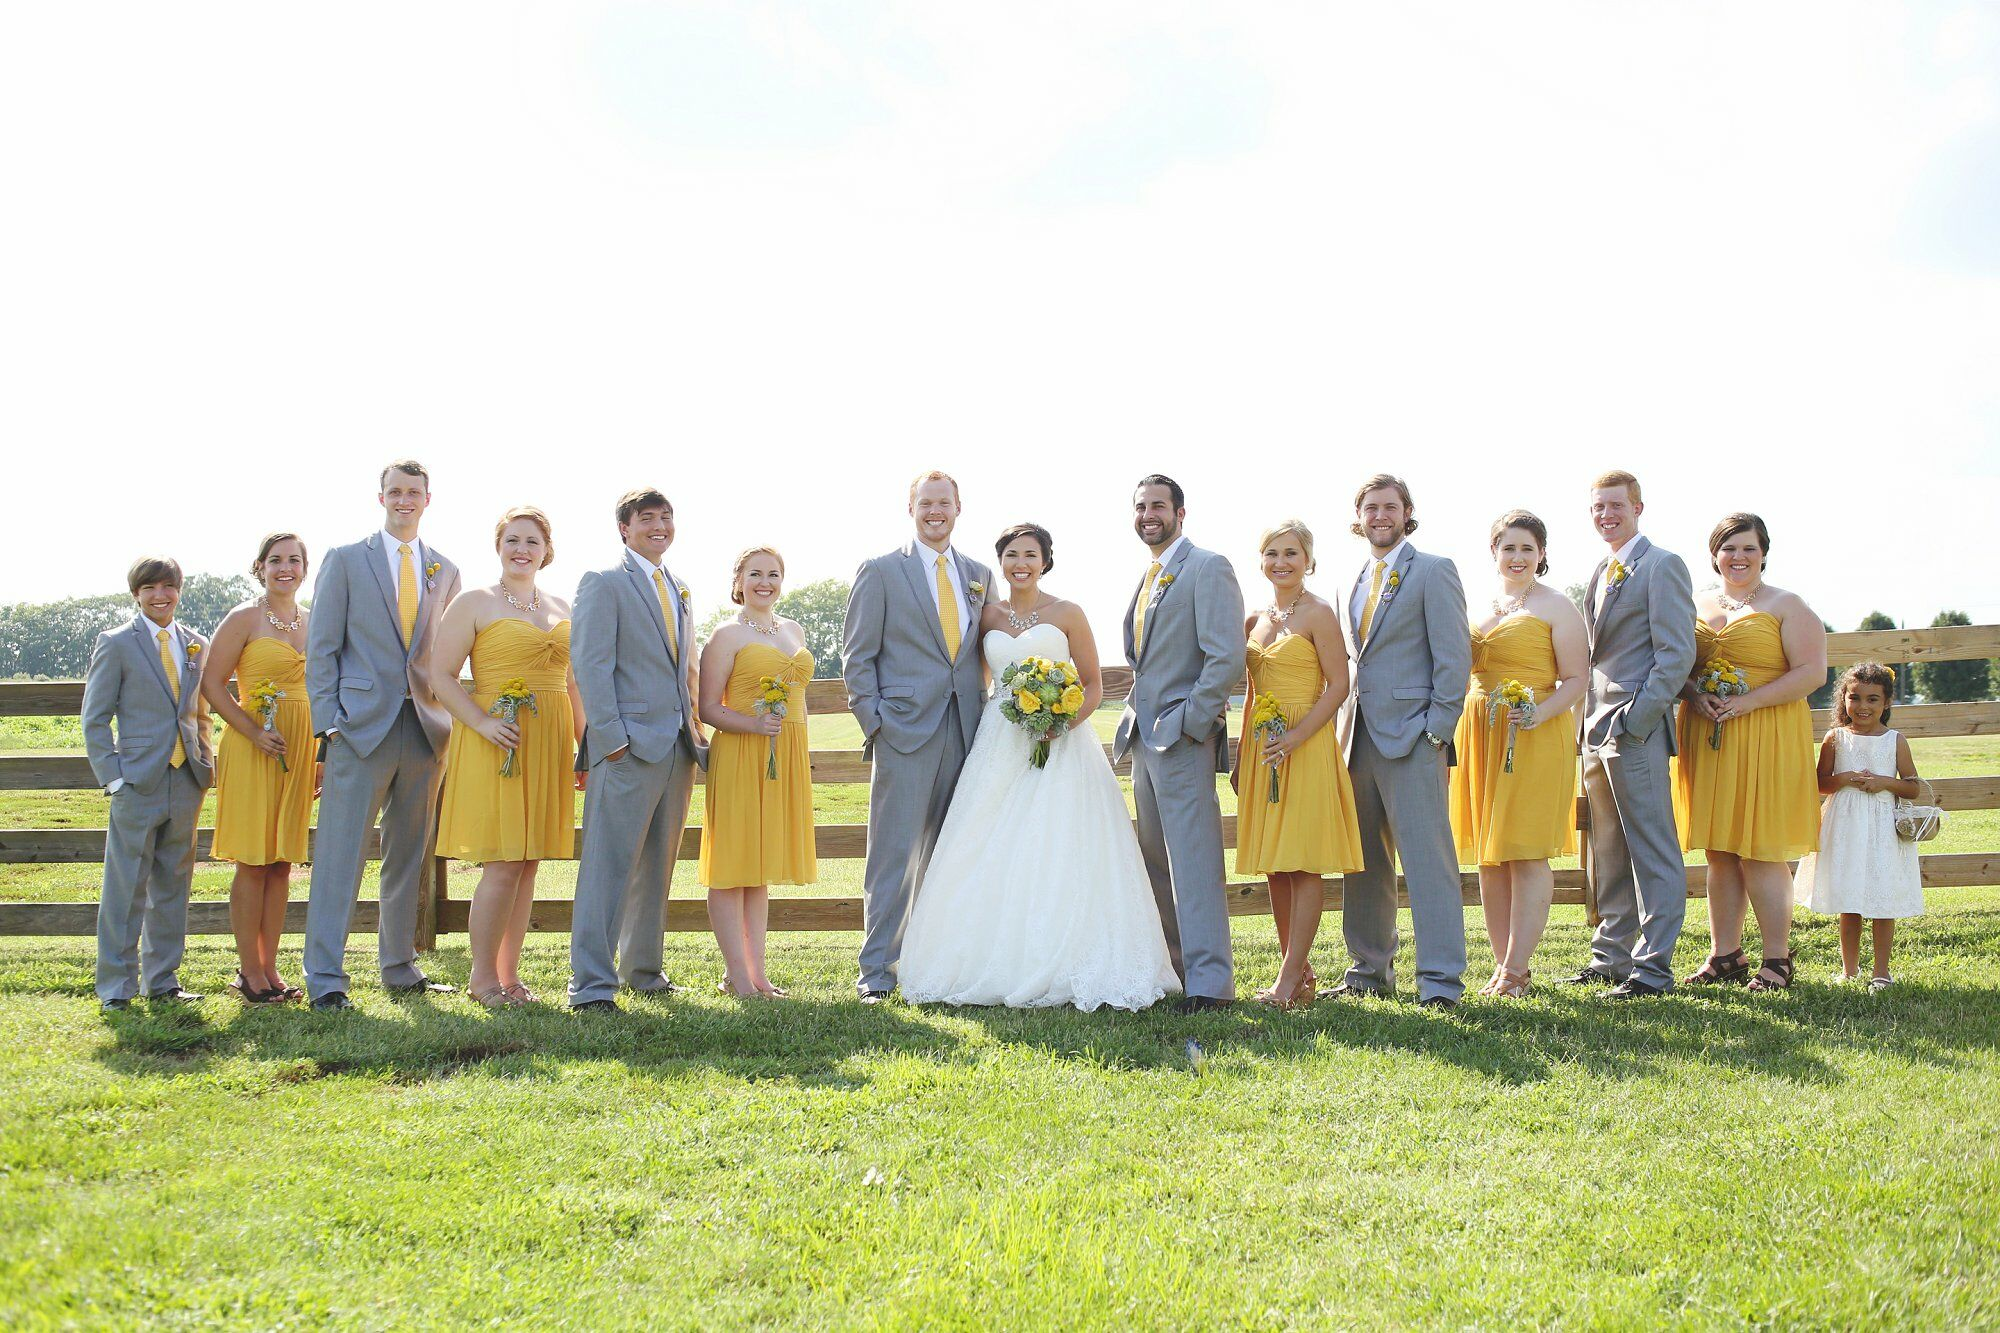 A Canary Yellow Barn Wedding At Tate Farms In Meridianville Alabama